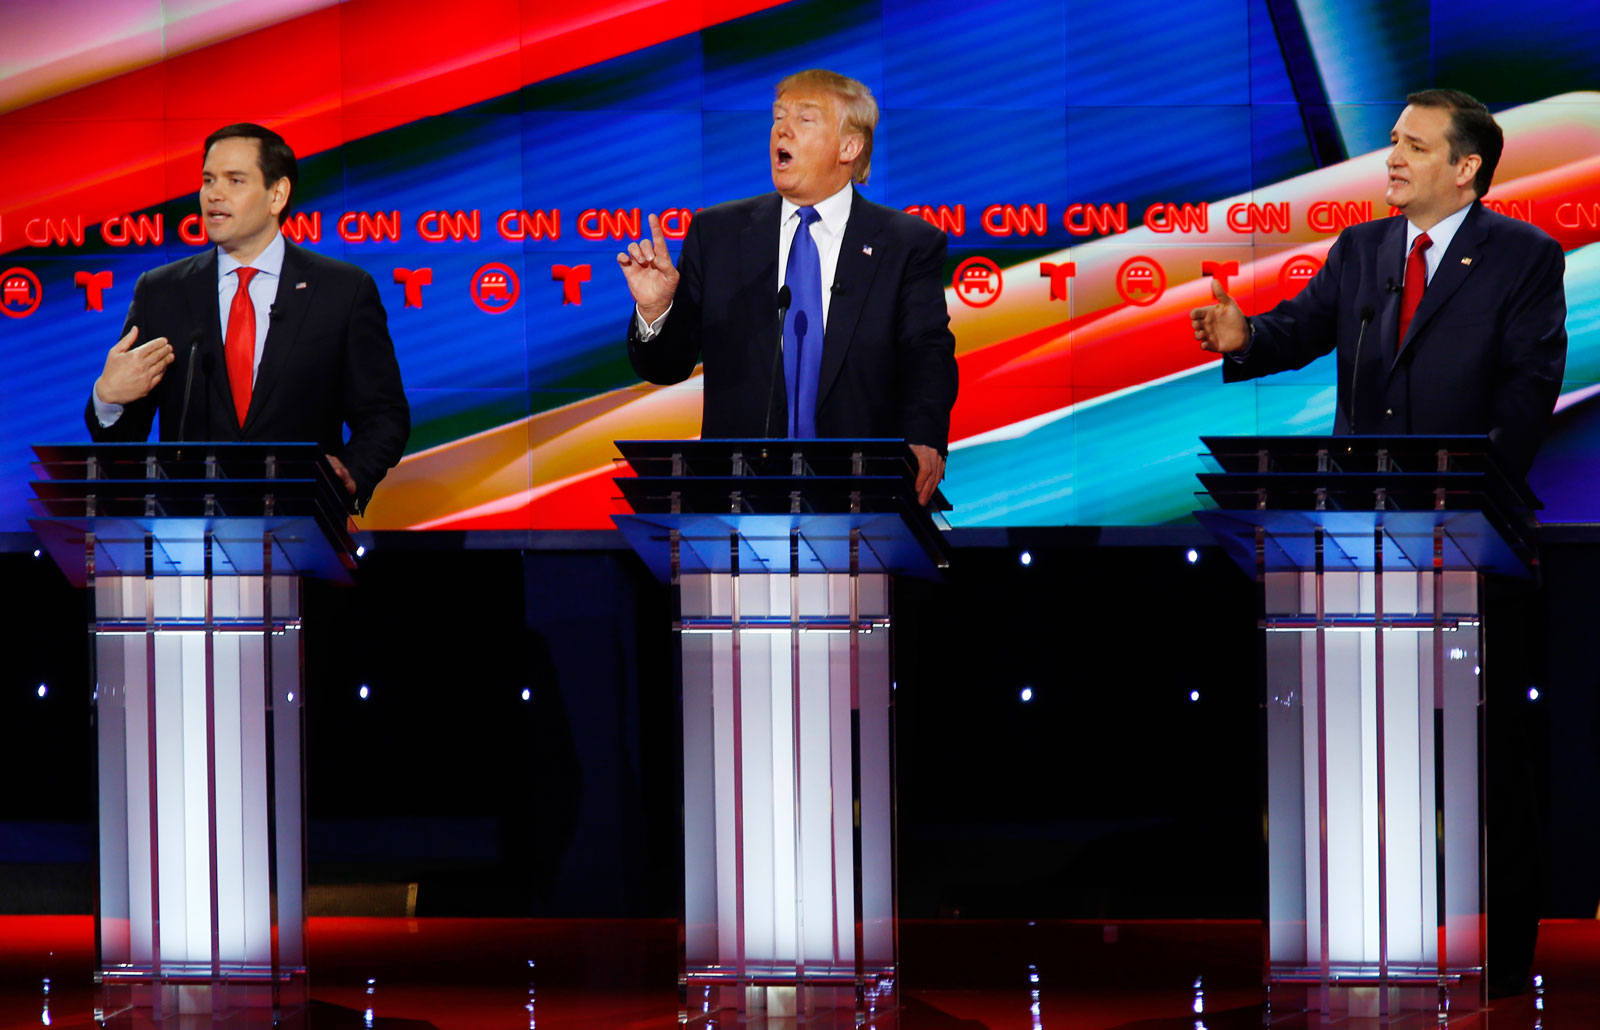 Senator Marco Rubio, Donald Trump and Senator Ted Cruz speak at the CNN-sponsored debate for the 2016 Republican US presidential candidates, Houston, Texas, February 25, 2016